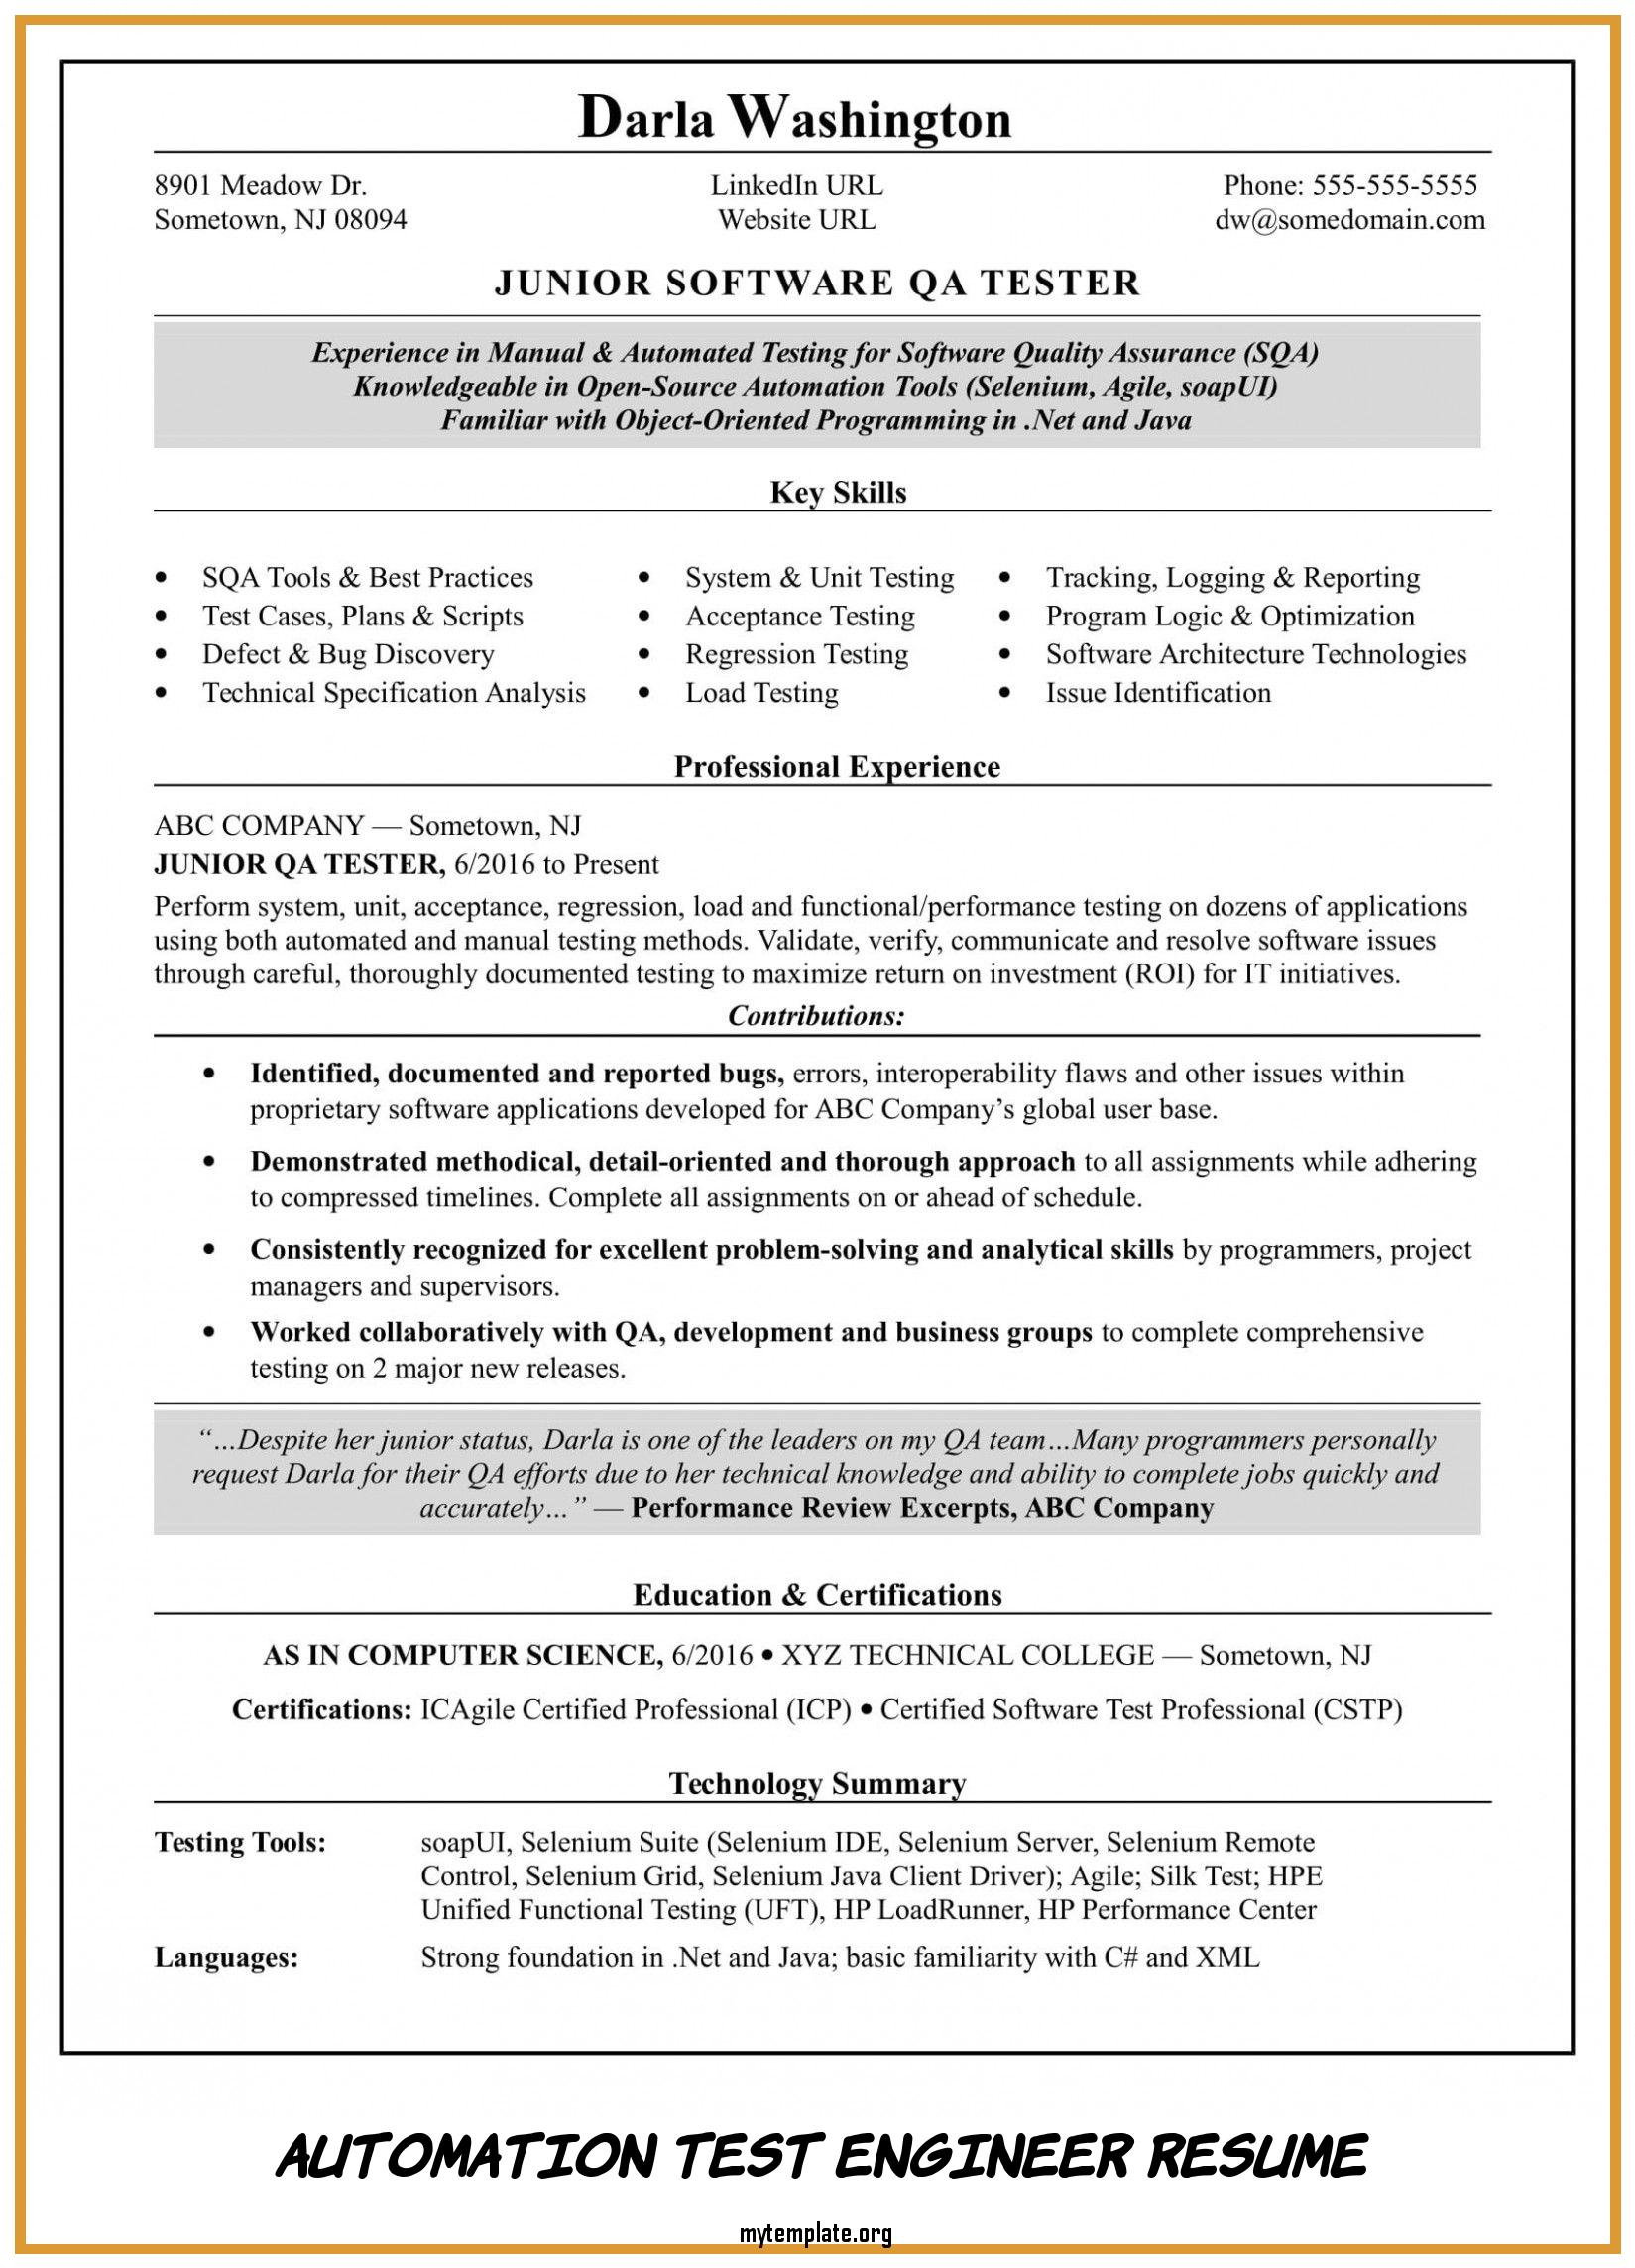 automation test engineer resume free templates tester of take look at pin drilling Resume Automation Tester Resume